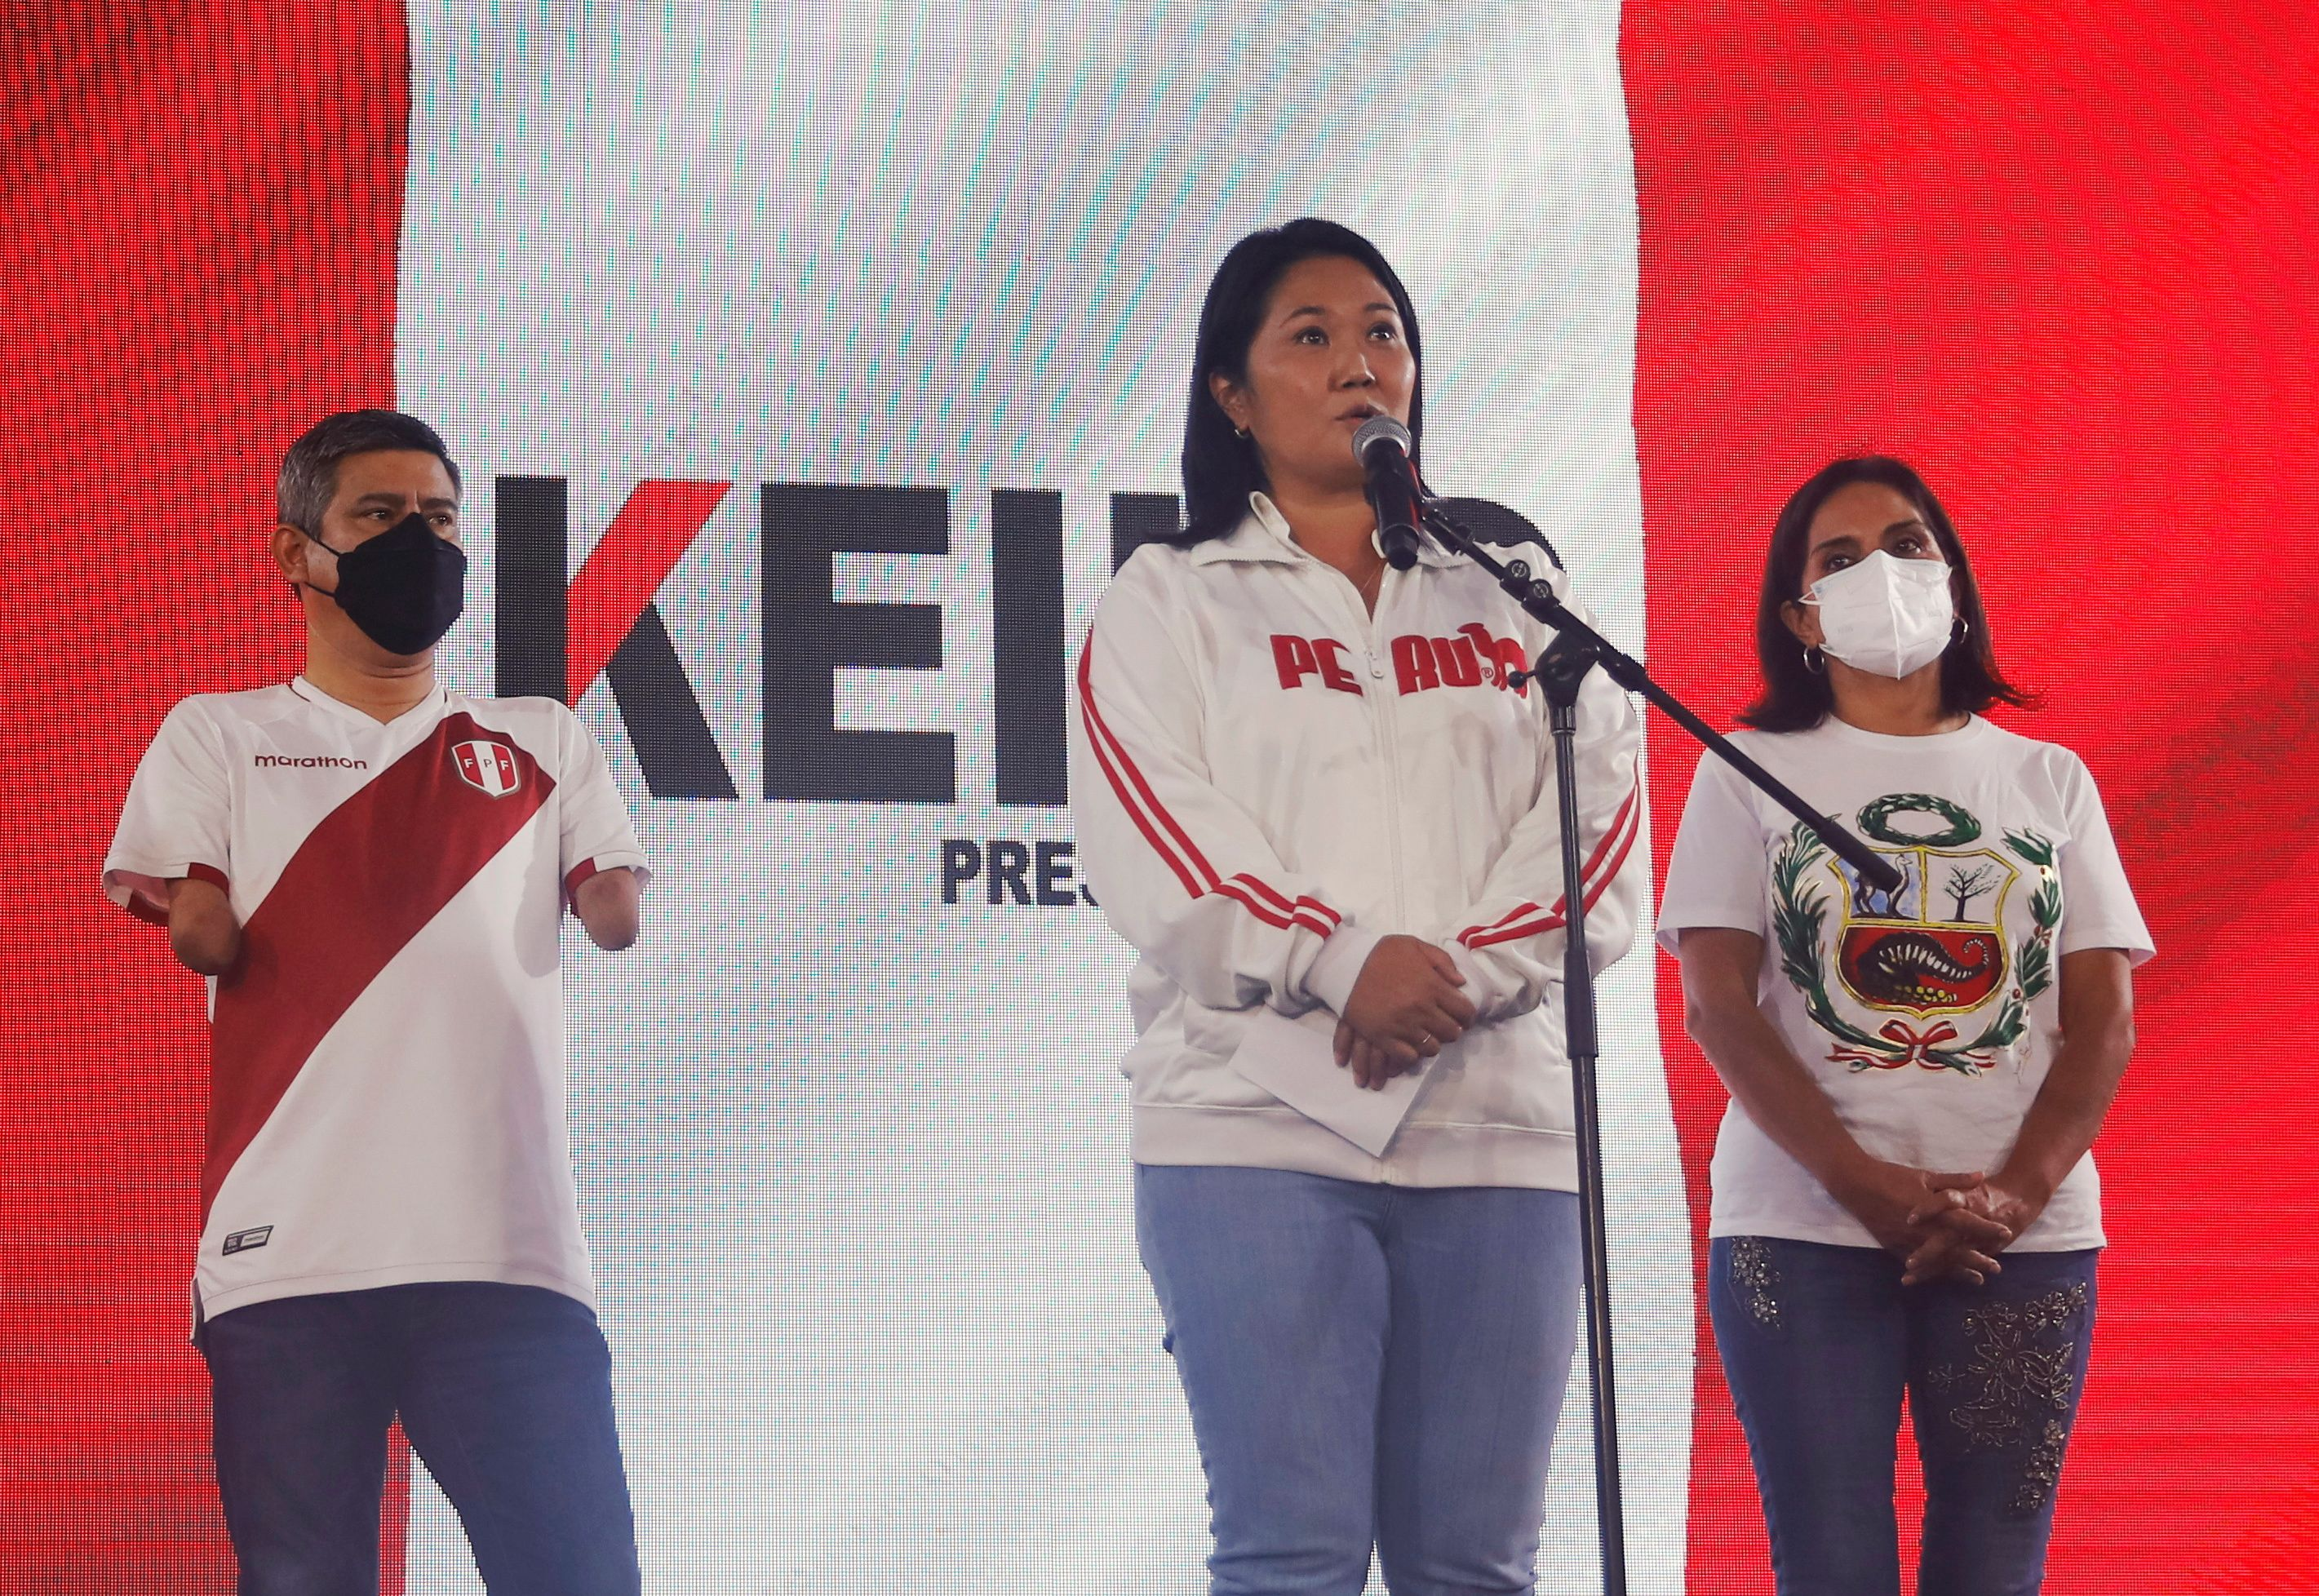 Peru's Castillo says there is 'hope' as razor-thin margin keeps country on edge